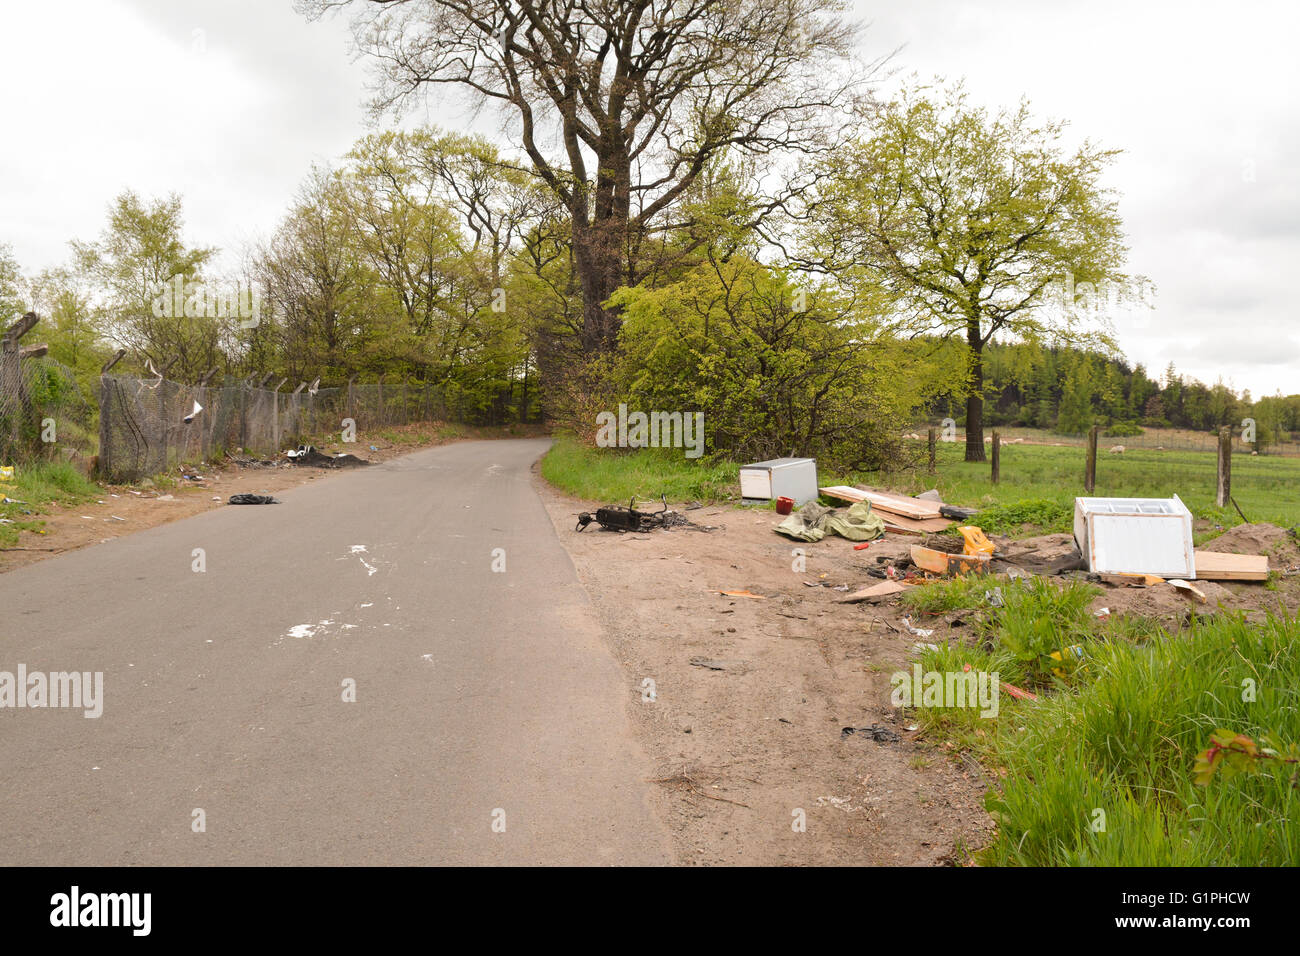 fly tipping, including electrical appliances, by the side of a rural road in Plains, Airdrie, North Lanarkshire, - Stock Image